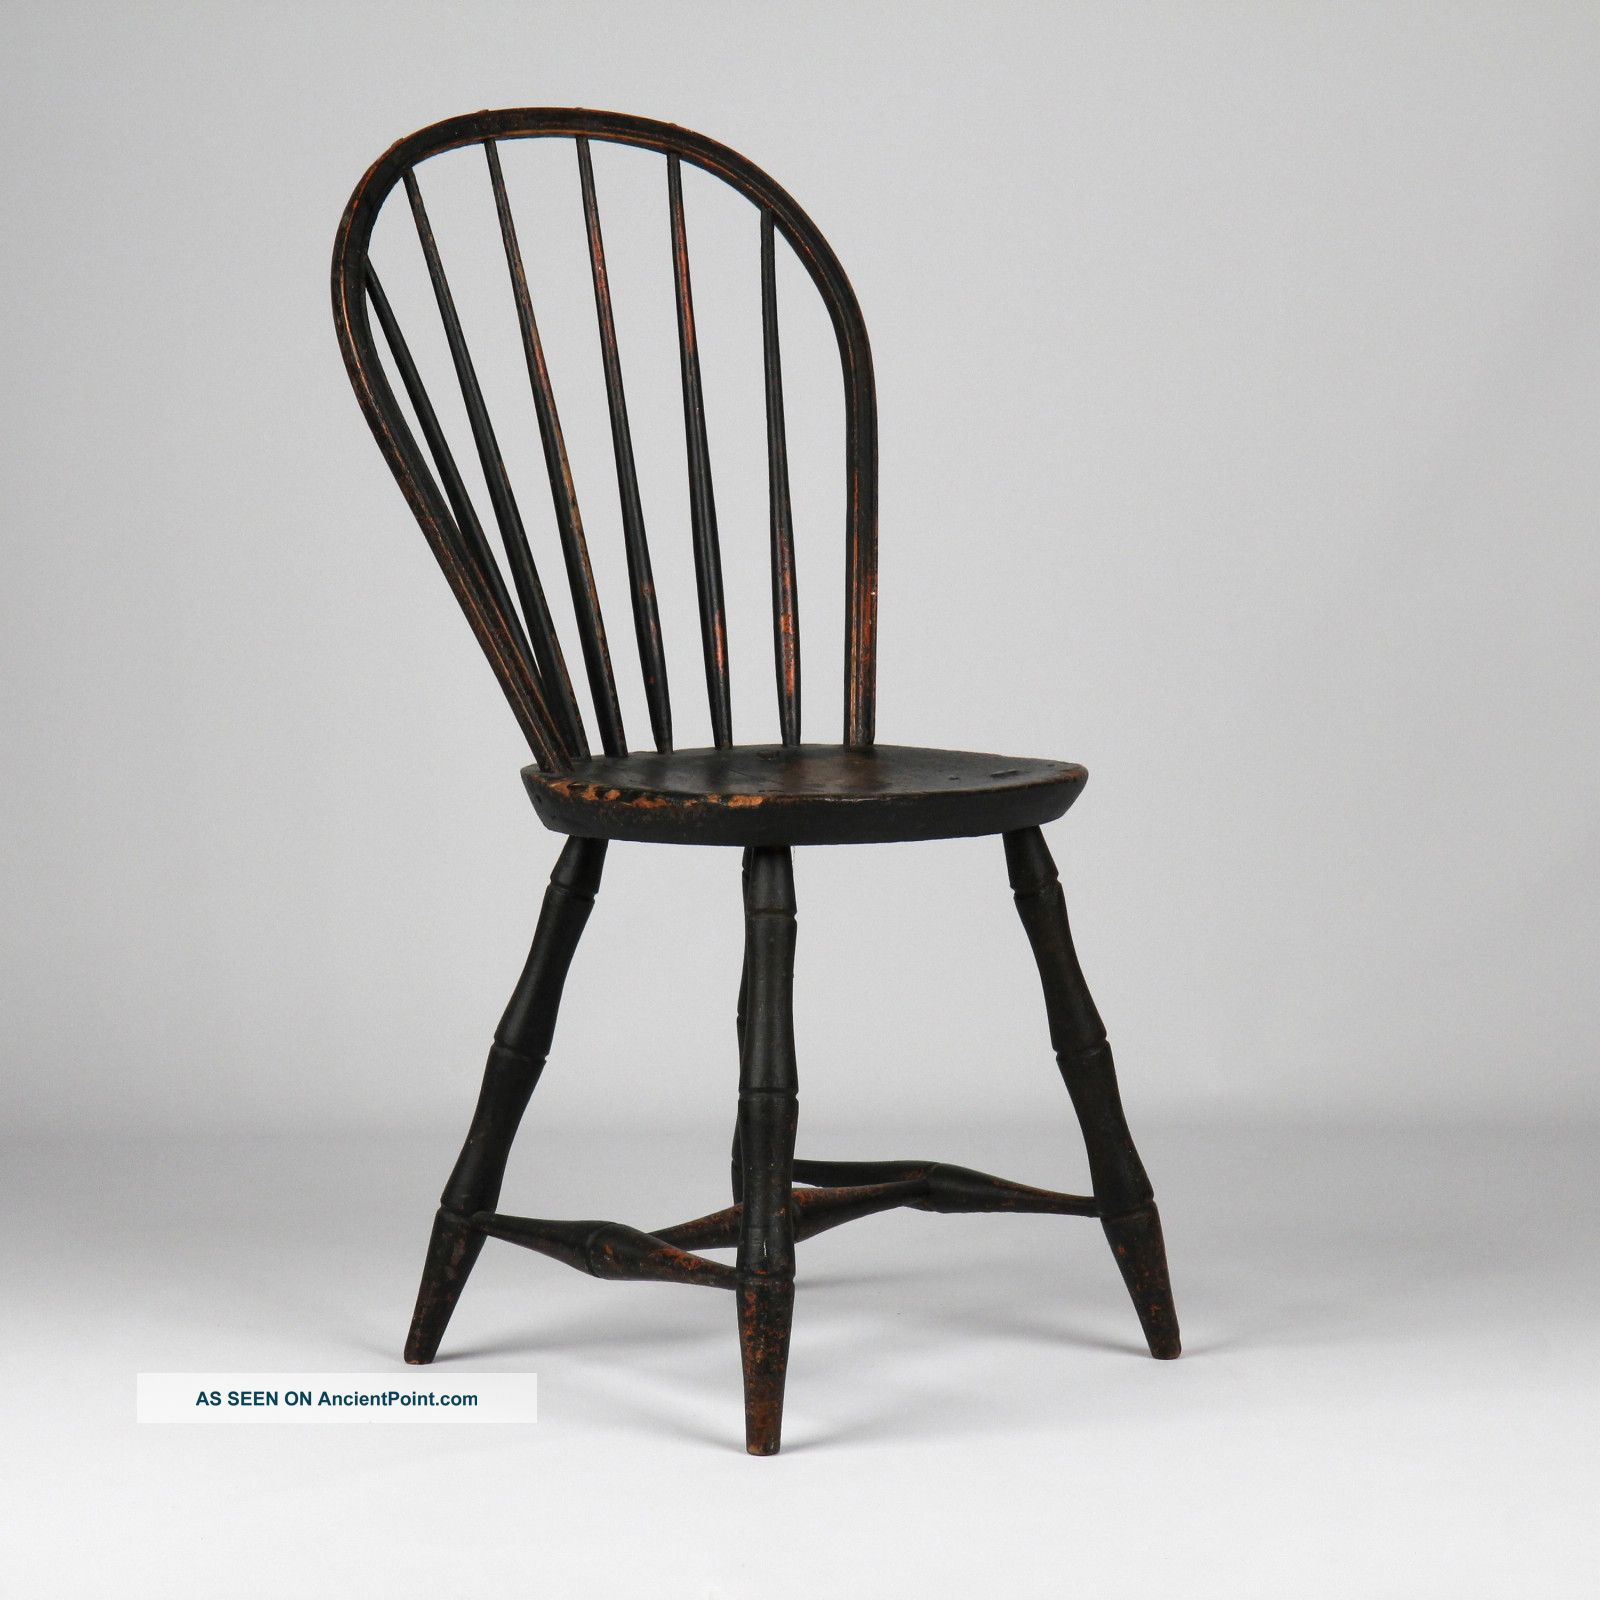 american federal period furniture on early american furniture styles